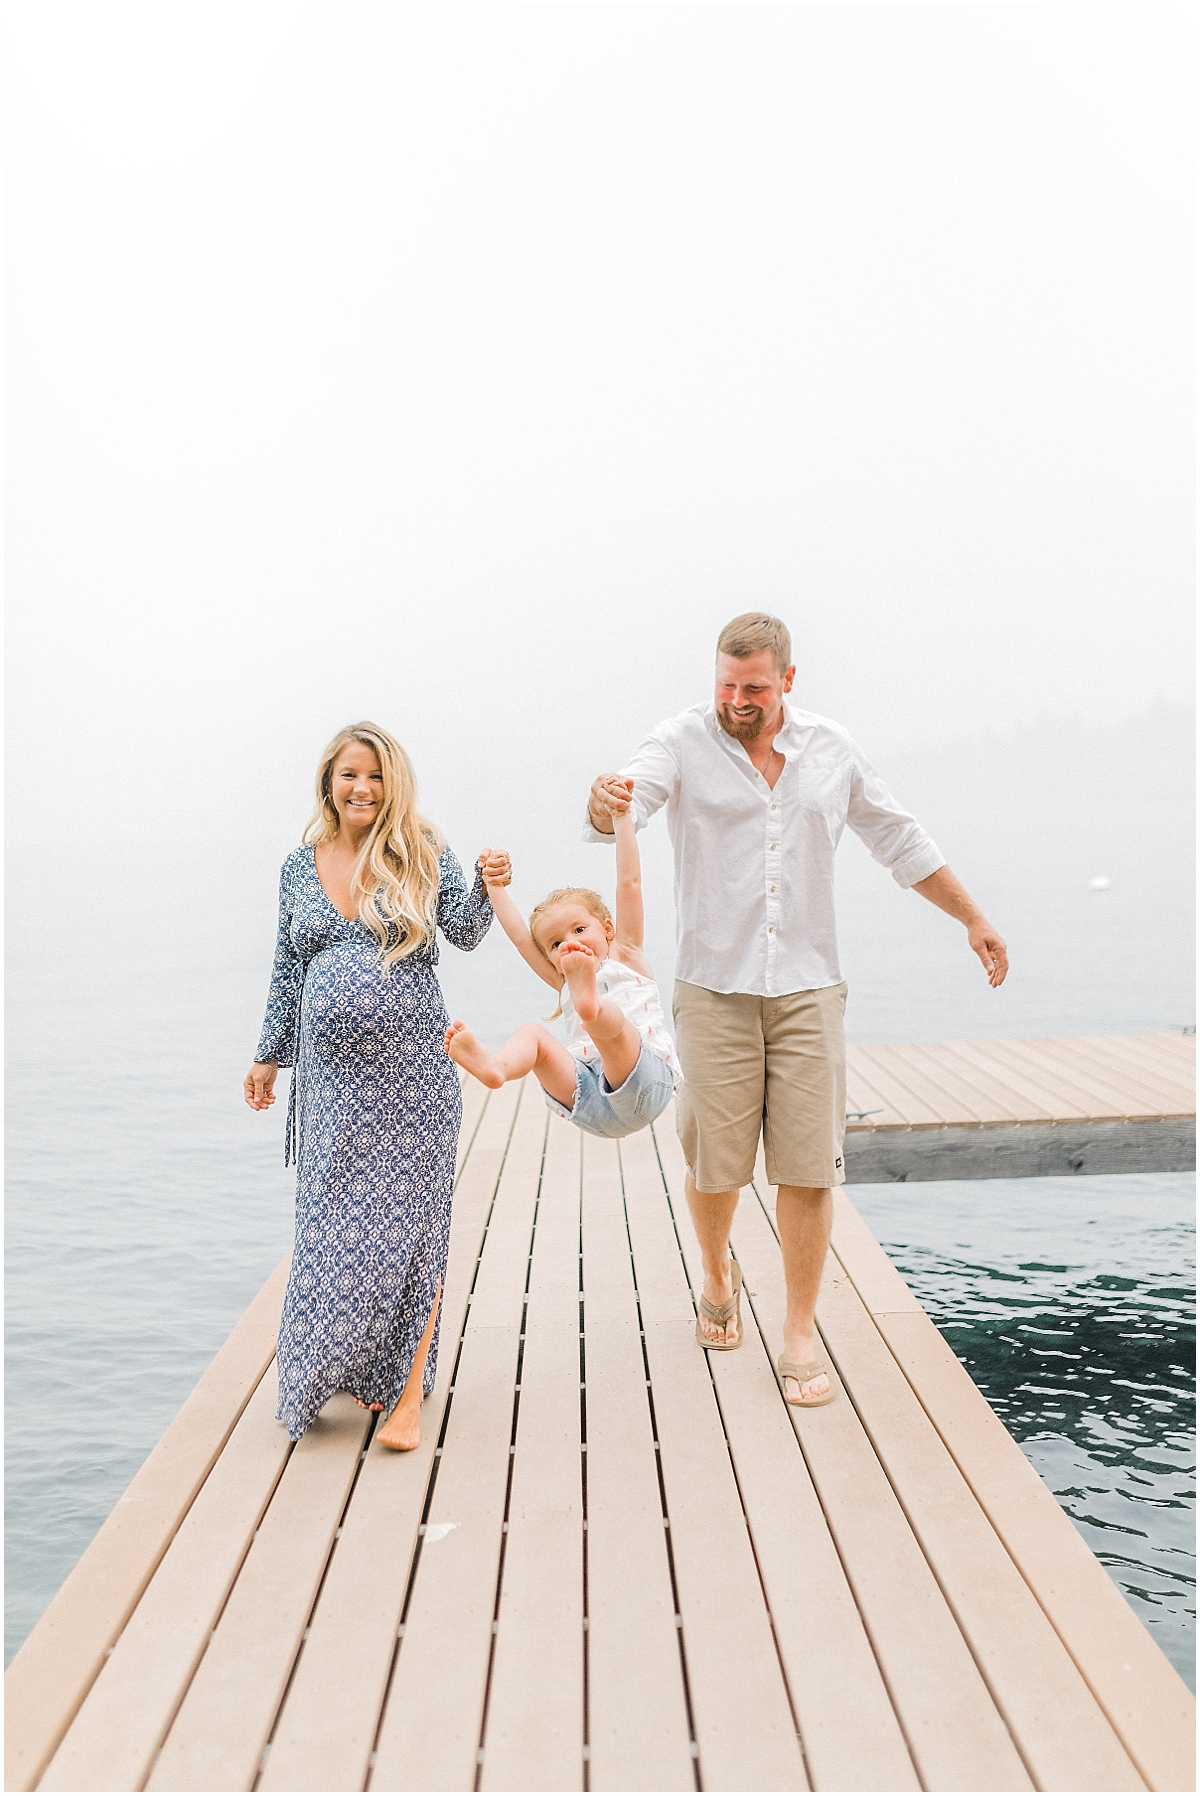 Emma Rose Company | PNW Family Portrait Photographer | Light and Airy Photography Style | What to Wear to Family Pictures | Kindred Presets | Lake Chelan Wedding Portrait Photographer_0083.jpg